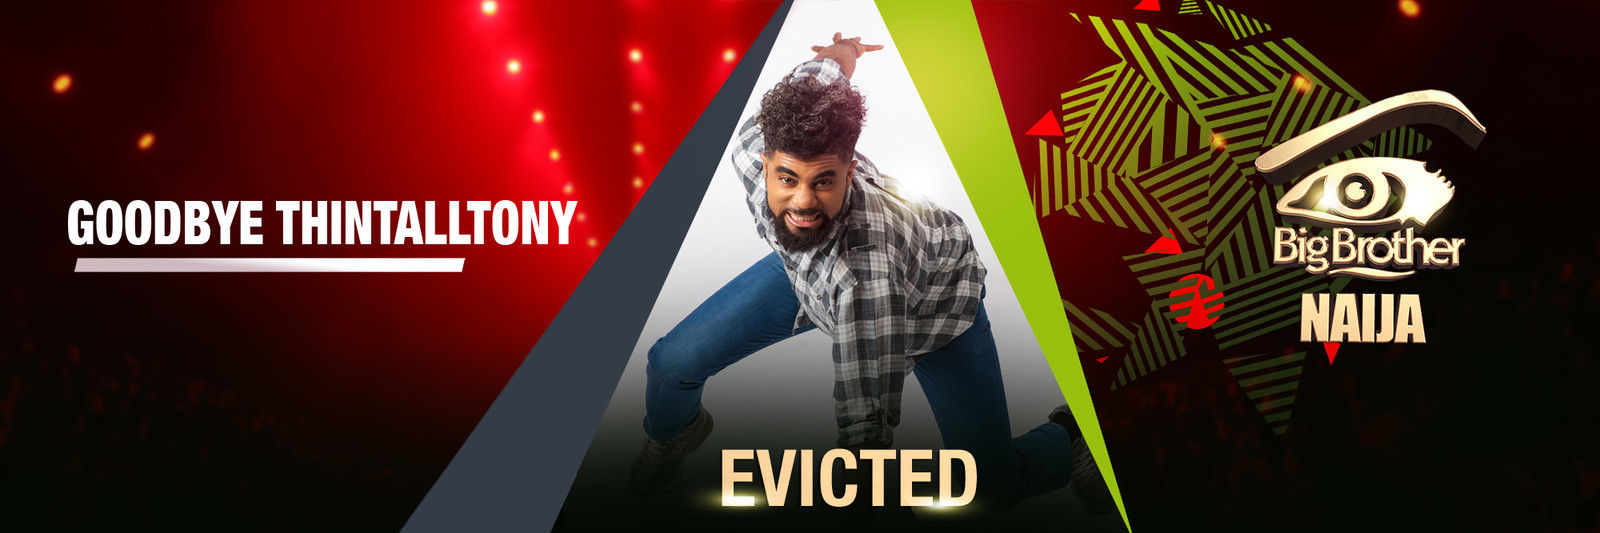 27 ttt evicted banner 004 pre